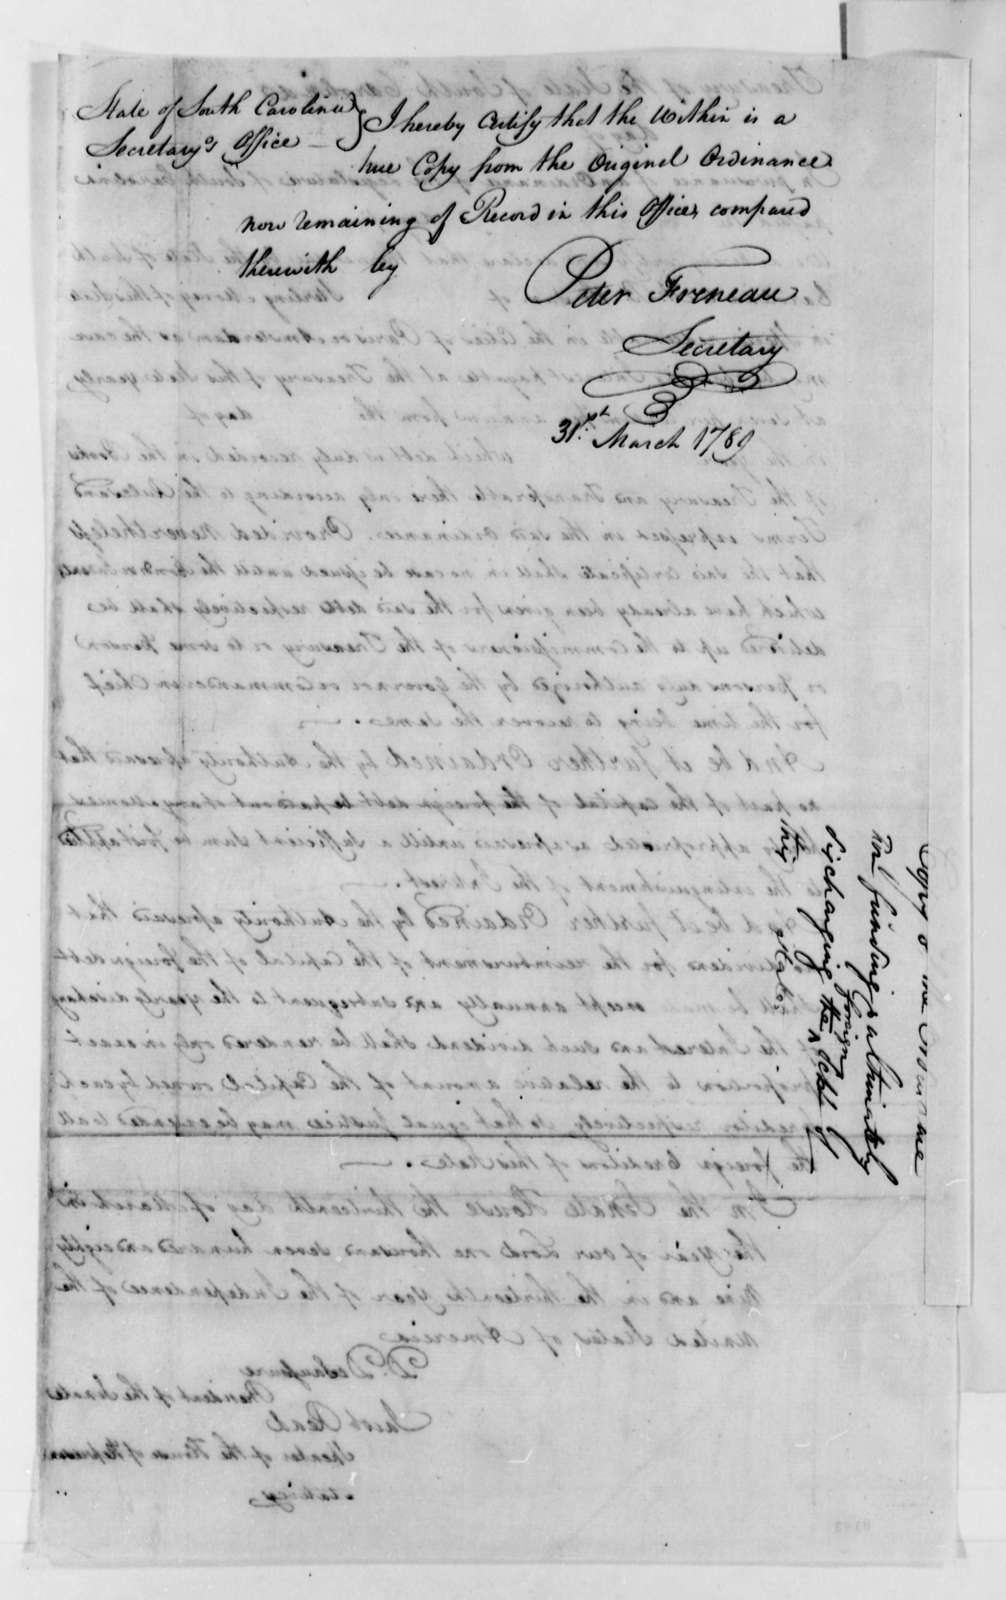 South Carolina General Assembly, March 31, 1789, Ordinance for Funding the Discharging the State Debt